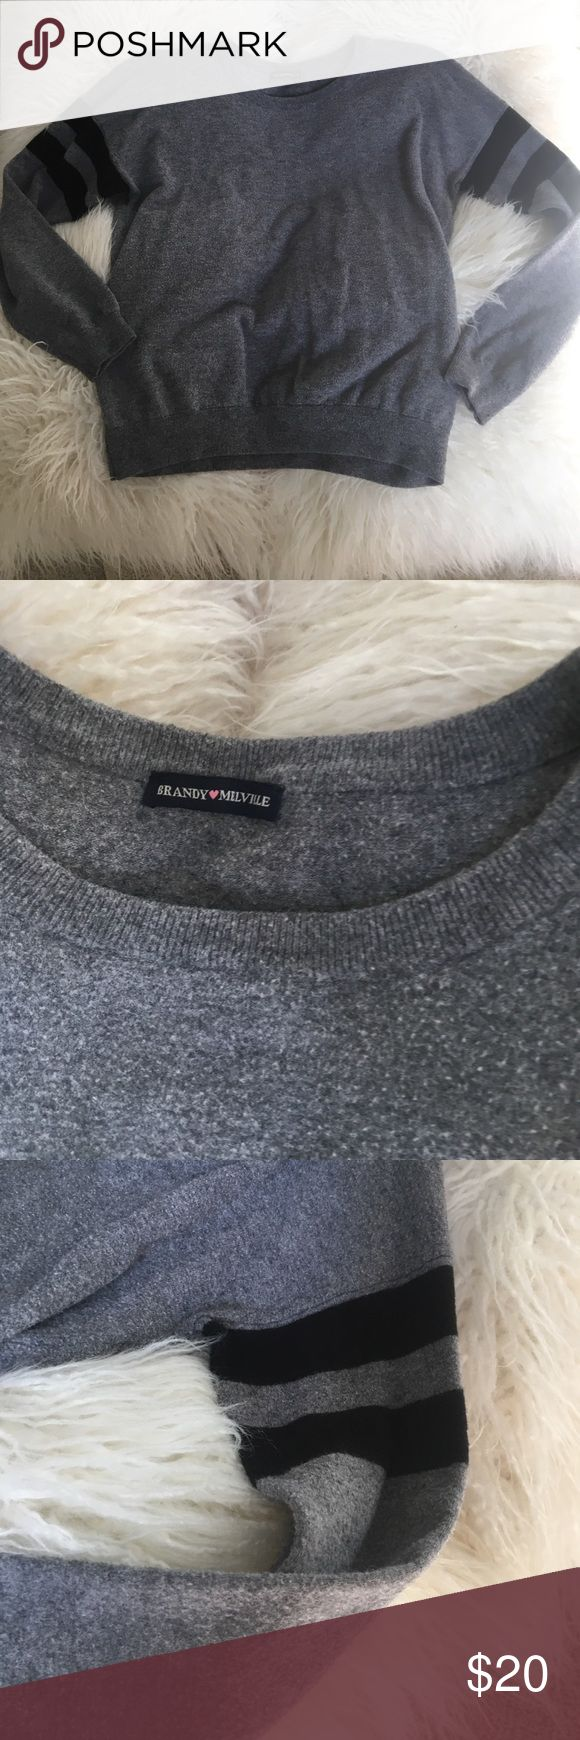 gently used BRANDY MELVILLE SWEATER PULL-OVER Good condition, Brandy Melville SWEATER, CUTE AND COZY WOMEN/JUNIOR FITS SIZES EXTRA SMALL TO MEDIUM Brandy Melville Sweaters